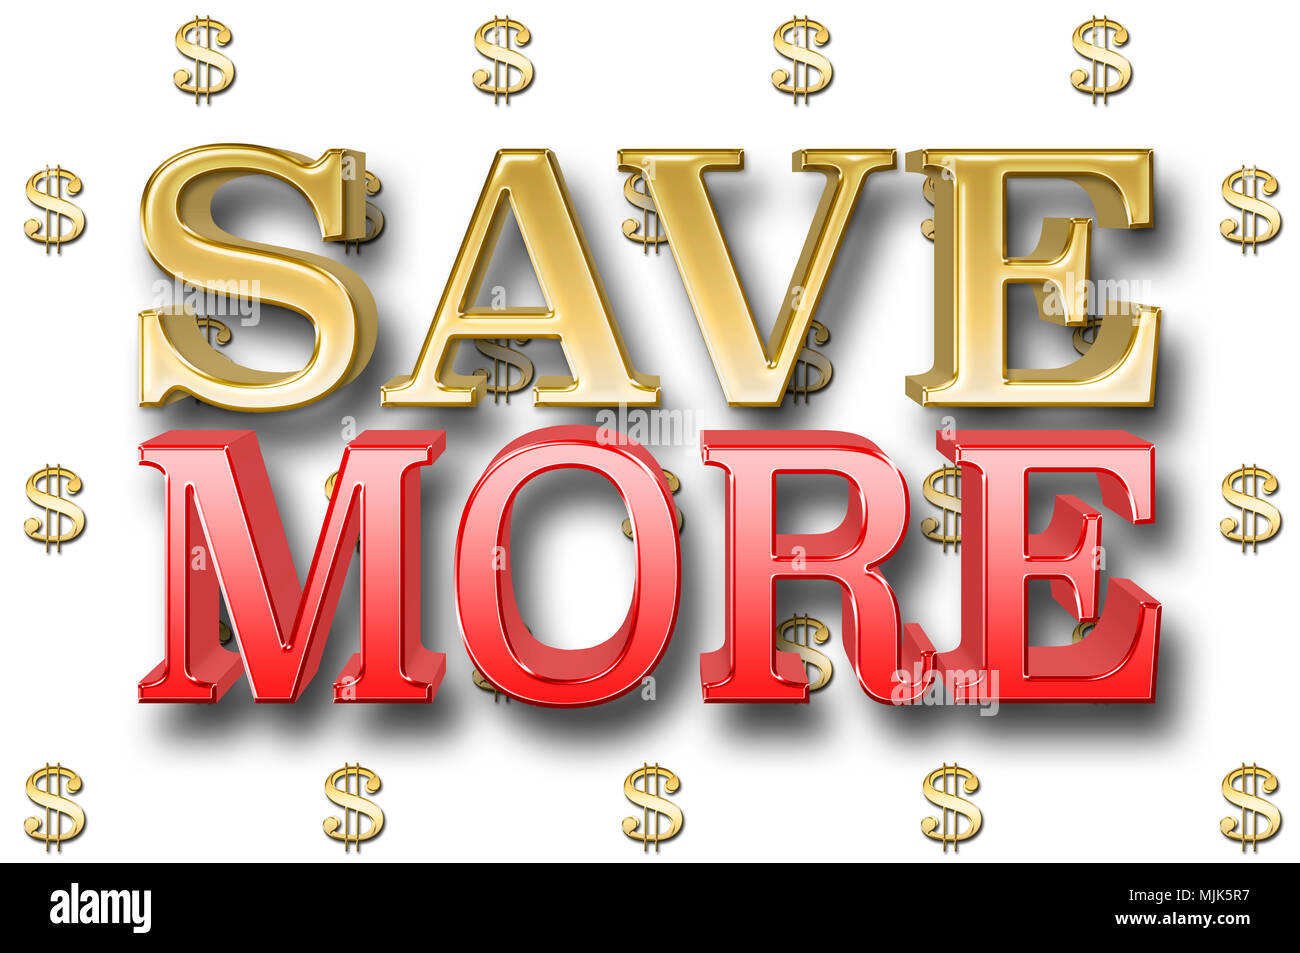 Stock Illustration - Large Metallic Text: Save More, 3D Illustration, Small Golden Dollar Currency Signs In the White Background. - Stock Image